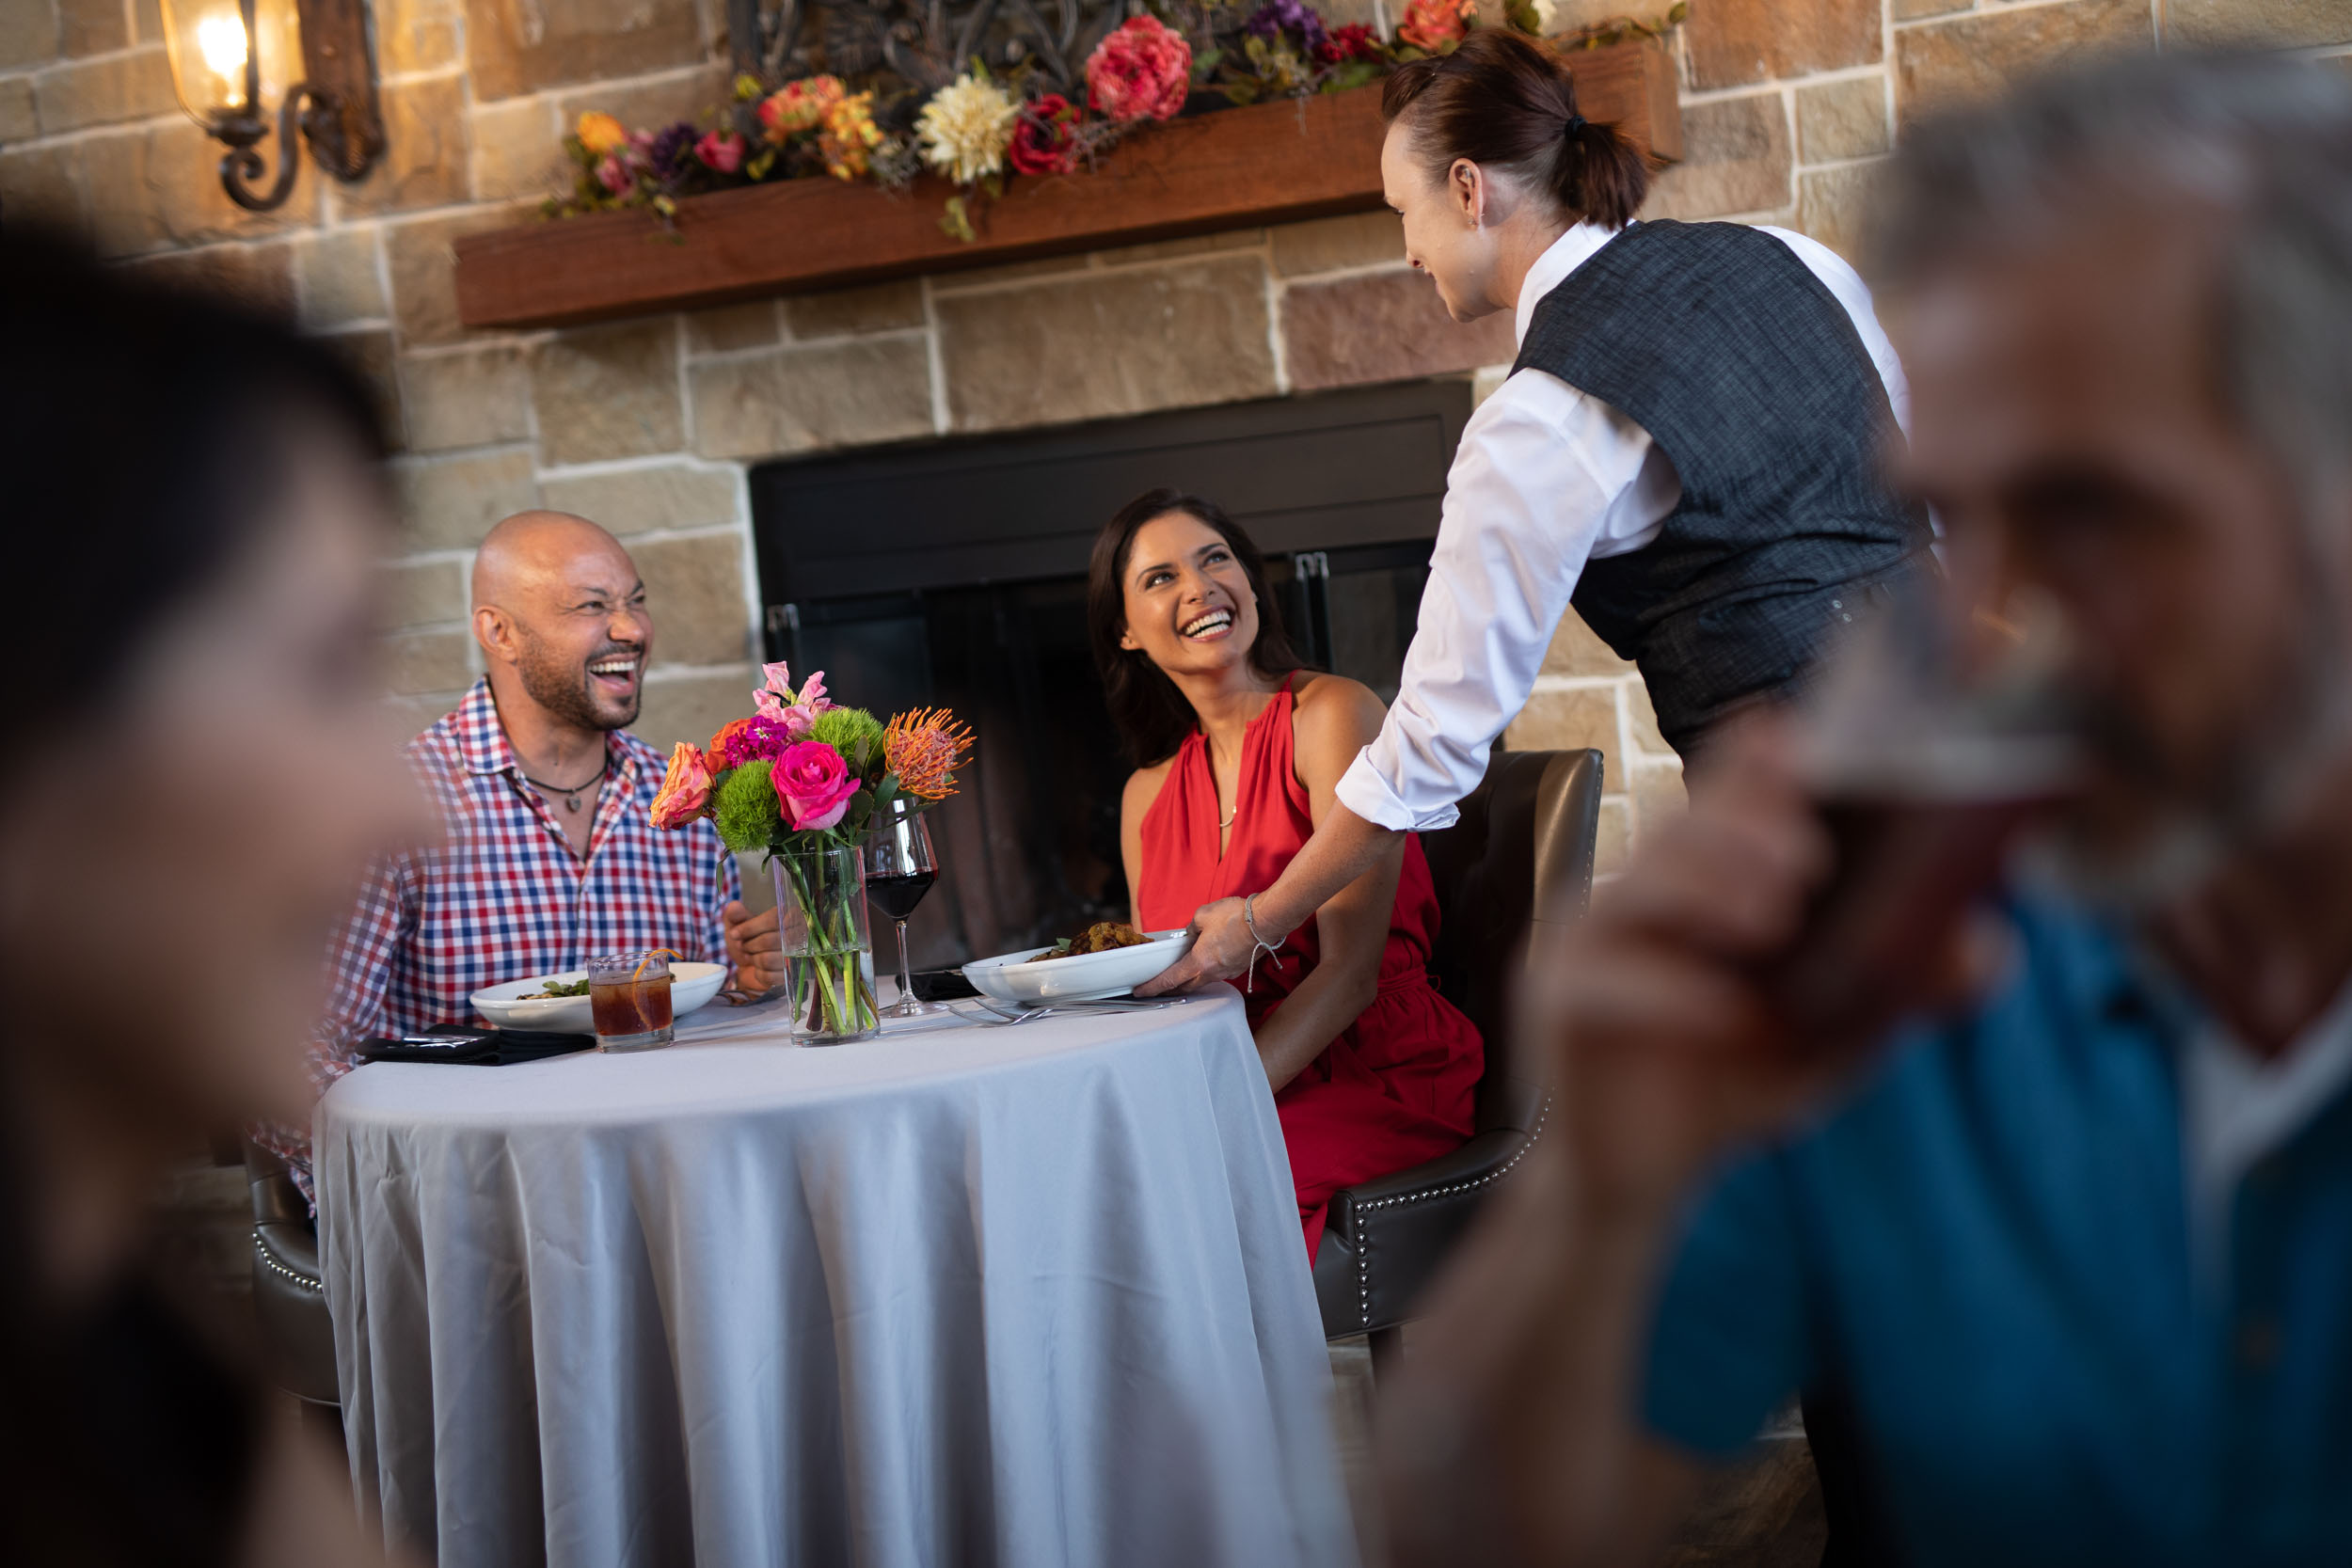 Florida Photography | couple in restaurant | Steven Martine